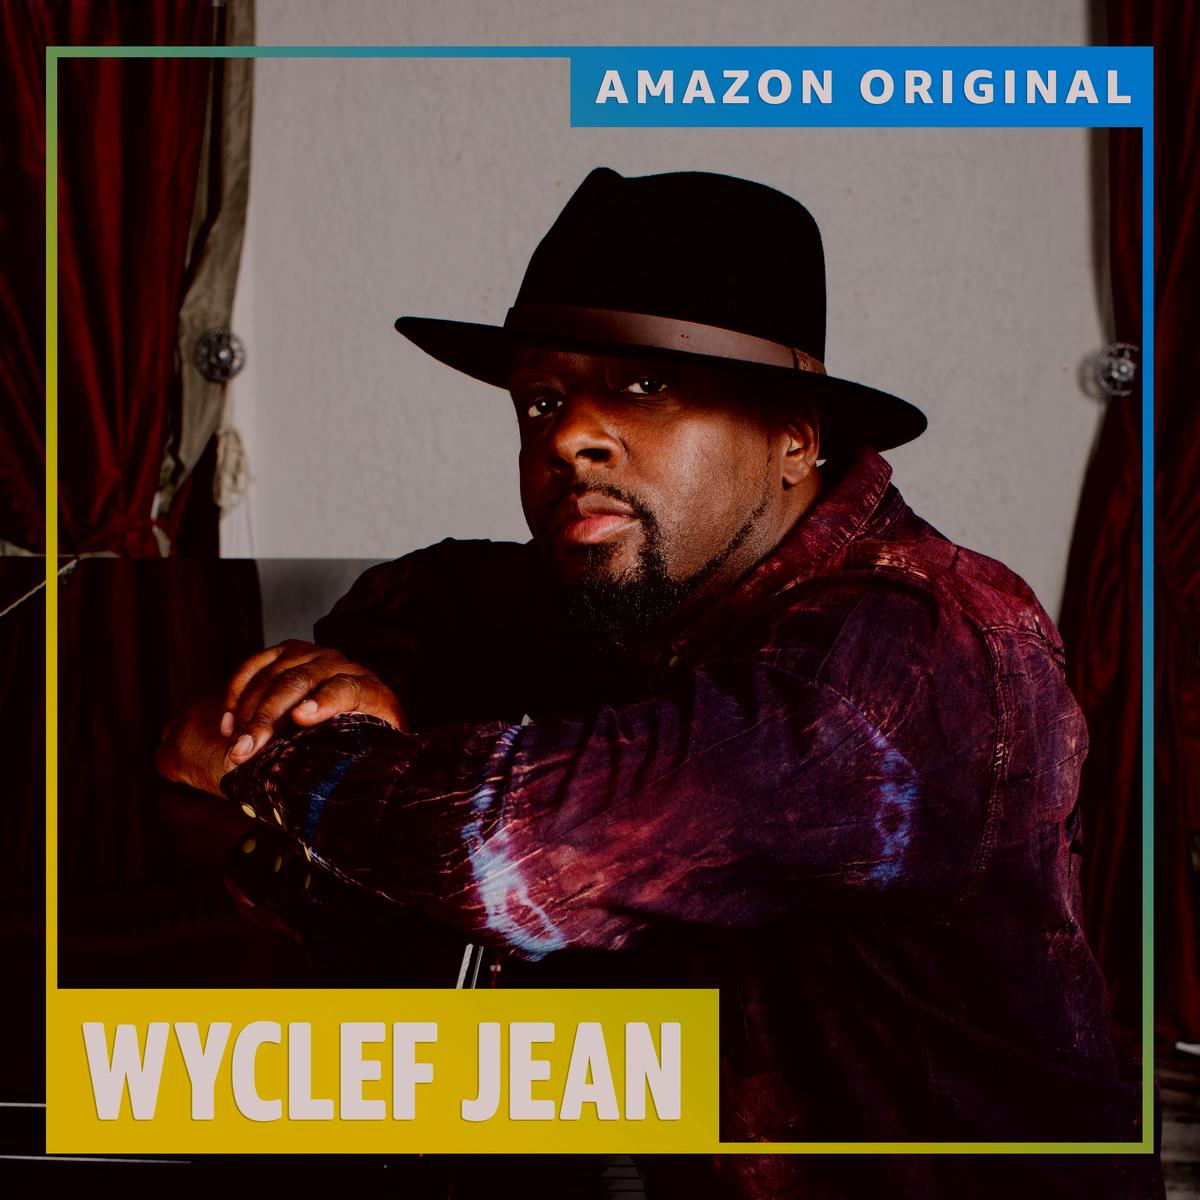 MP3: Wyclef Jean - Is This Love?